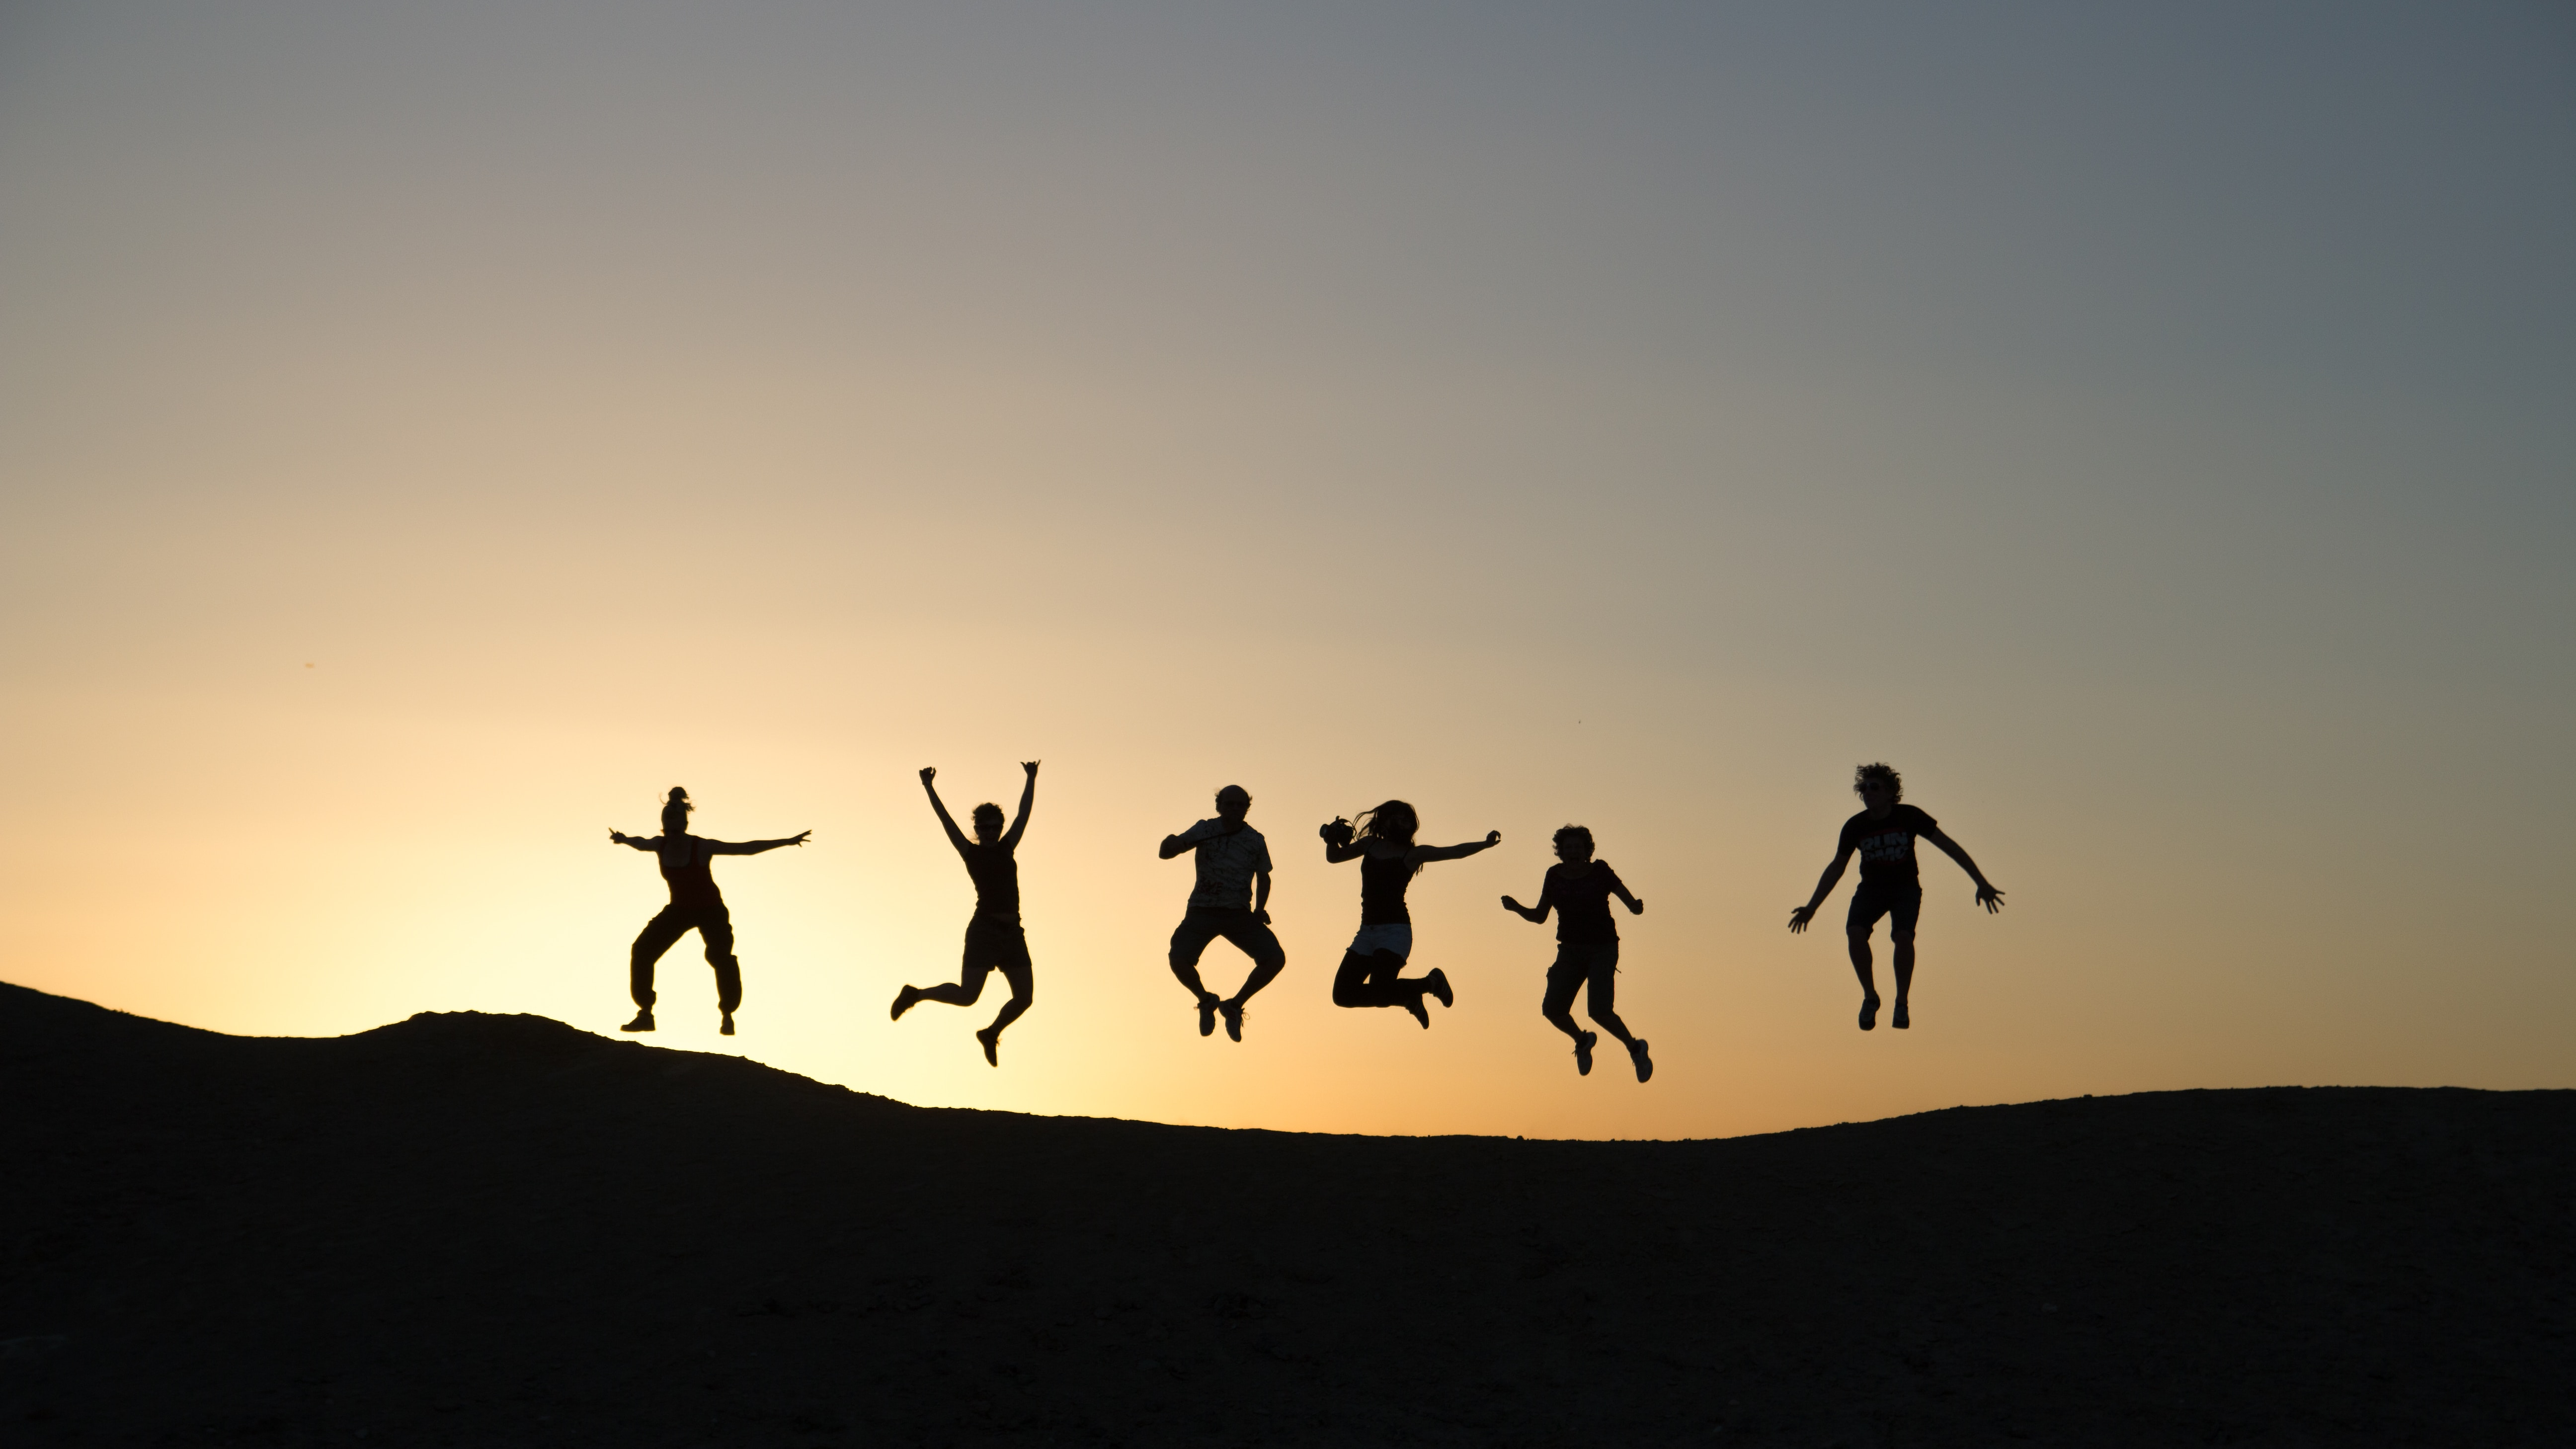 The silhouette of six people jumping against a sunset and a hill